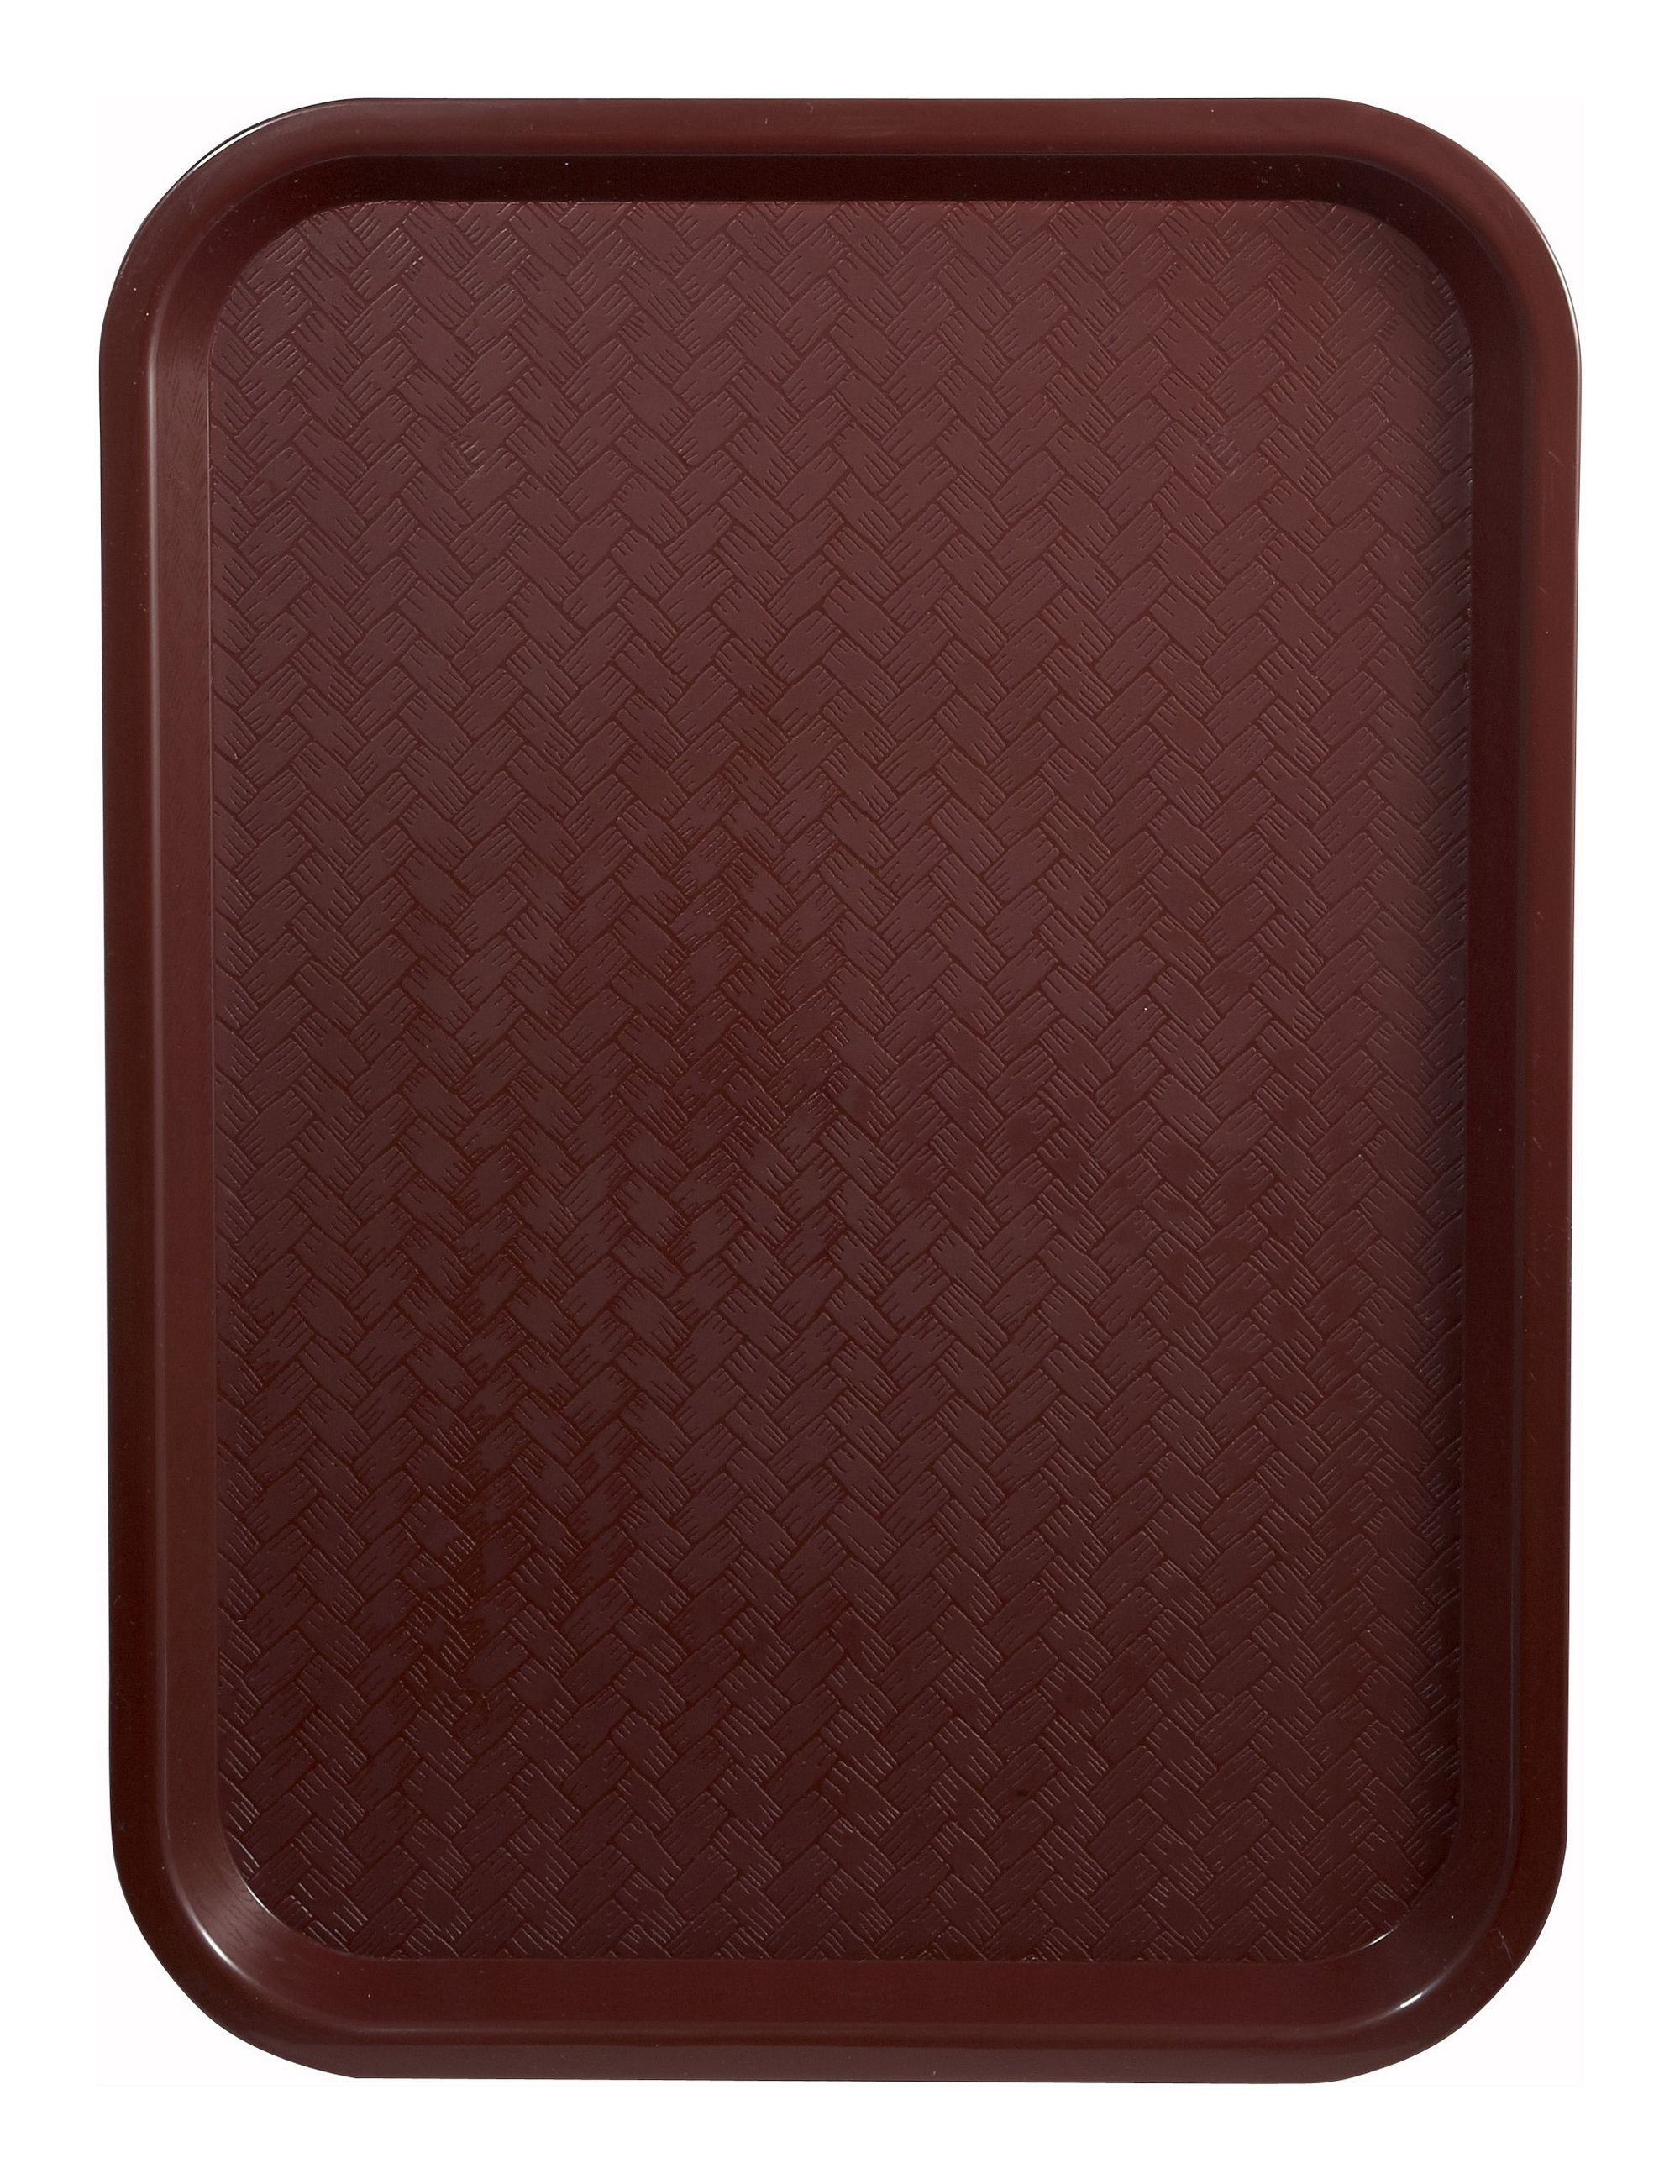 "Winco FFT-1216U Burgundy Plastic Fast Food Tray 12"" x 16"""